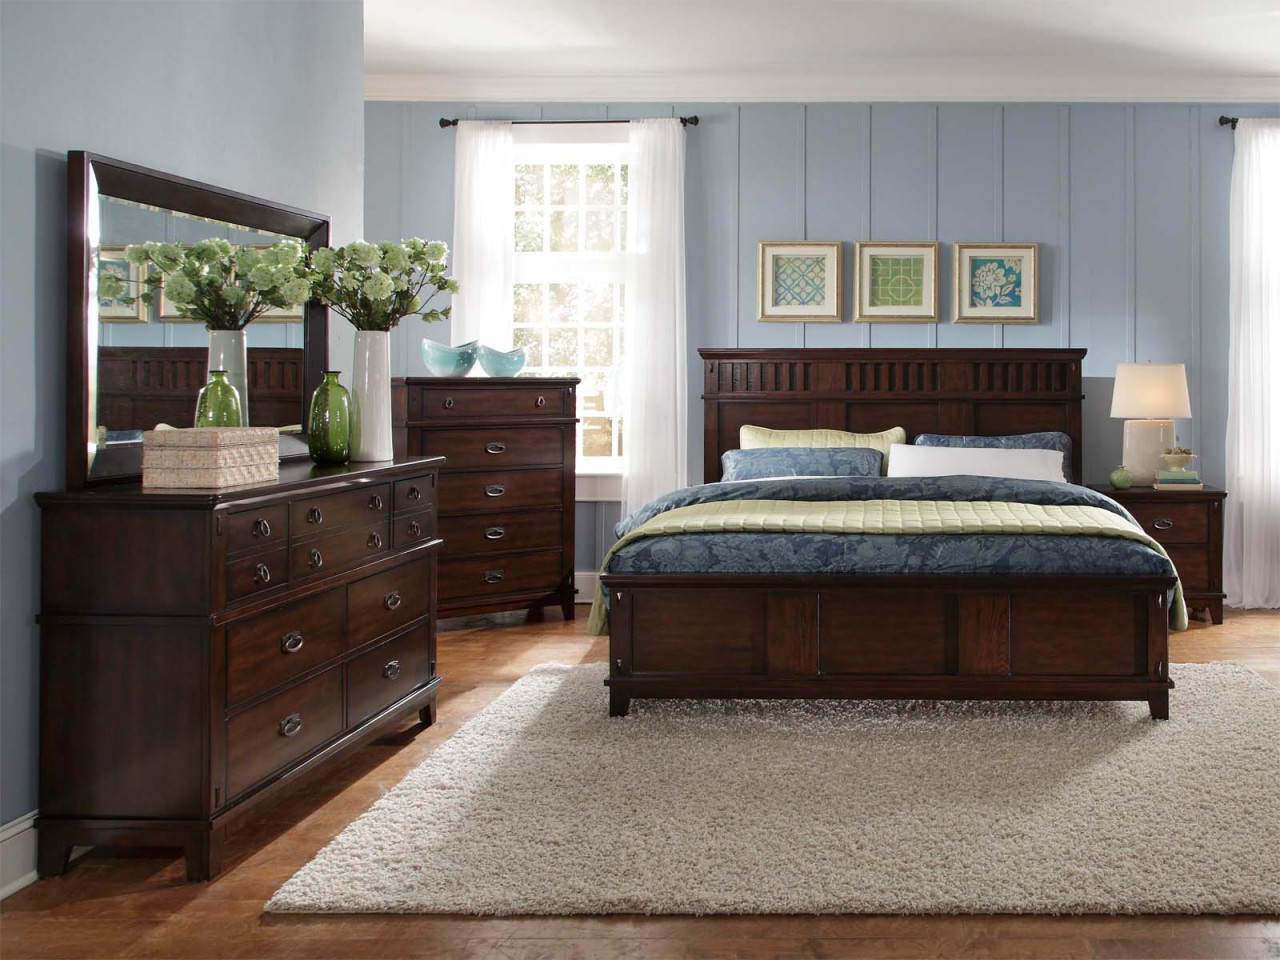 Bedroom designs with brown furniture